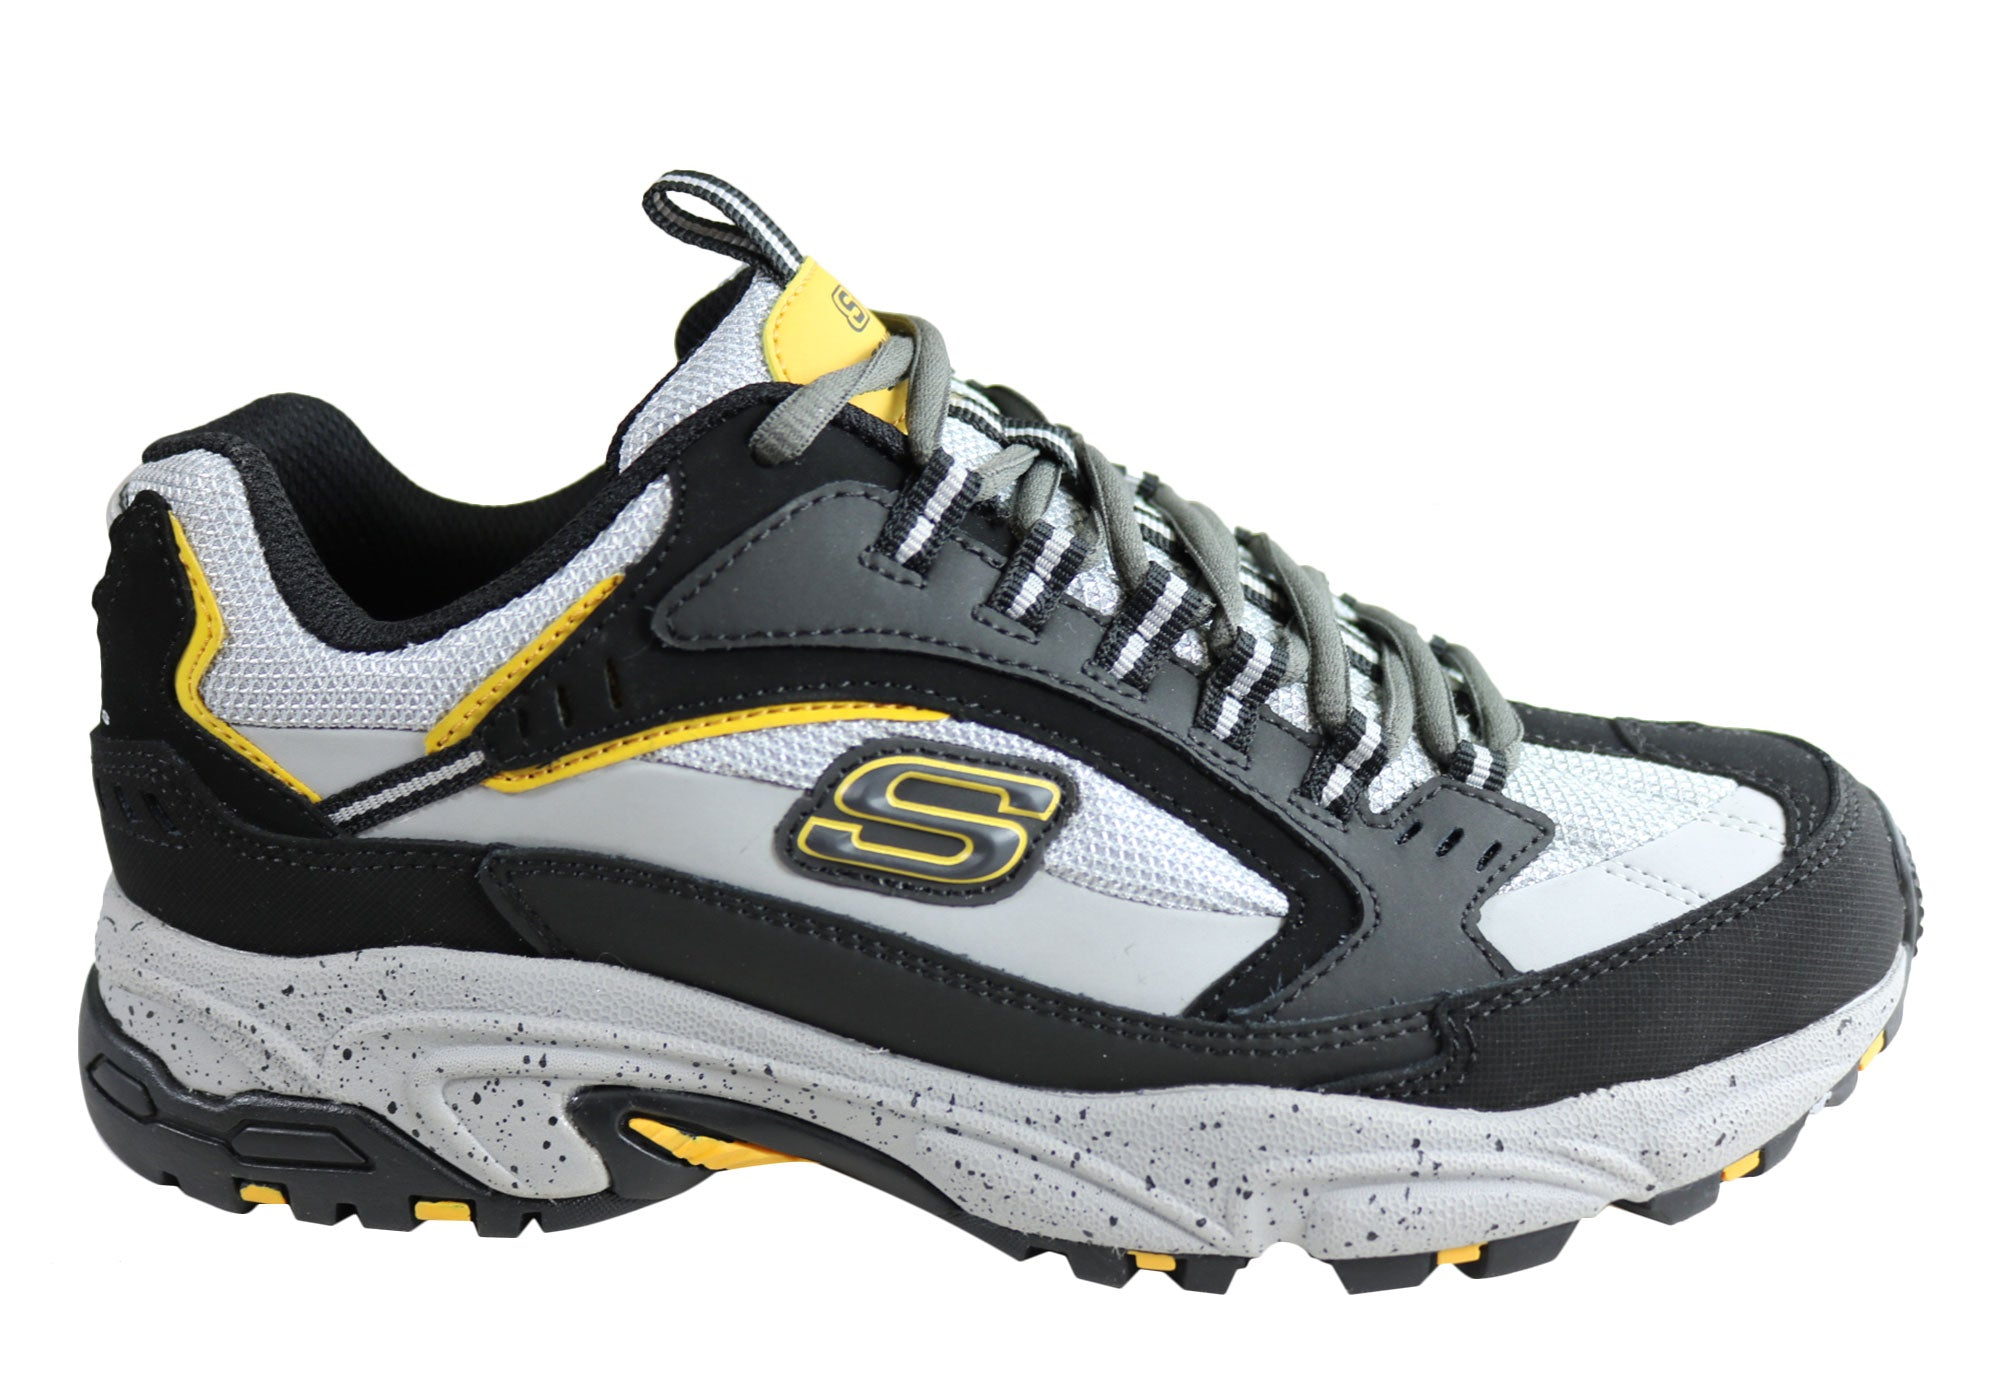 Banco Volcán Haciendo  Skechers Mens Stamina Cutback Comfortable Shoes | Brand House Direct